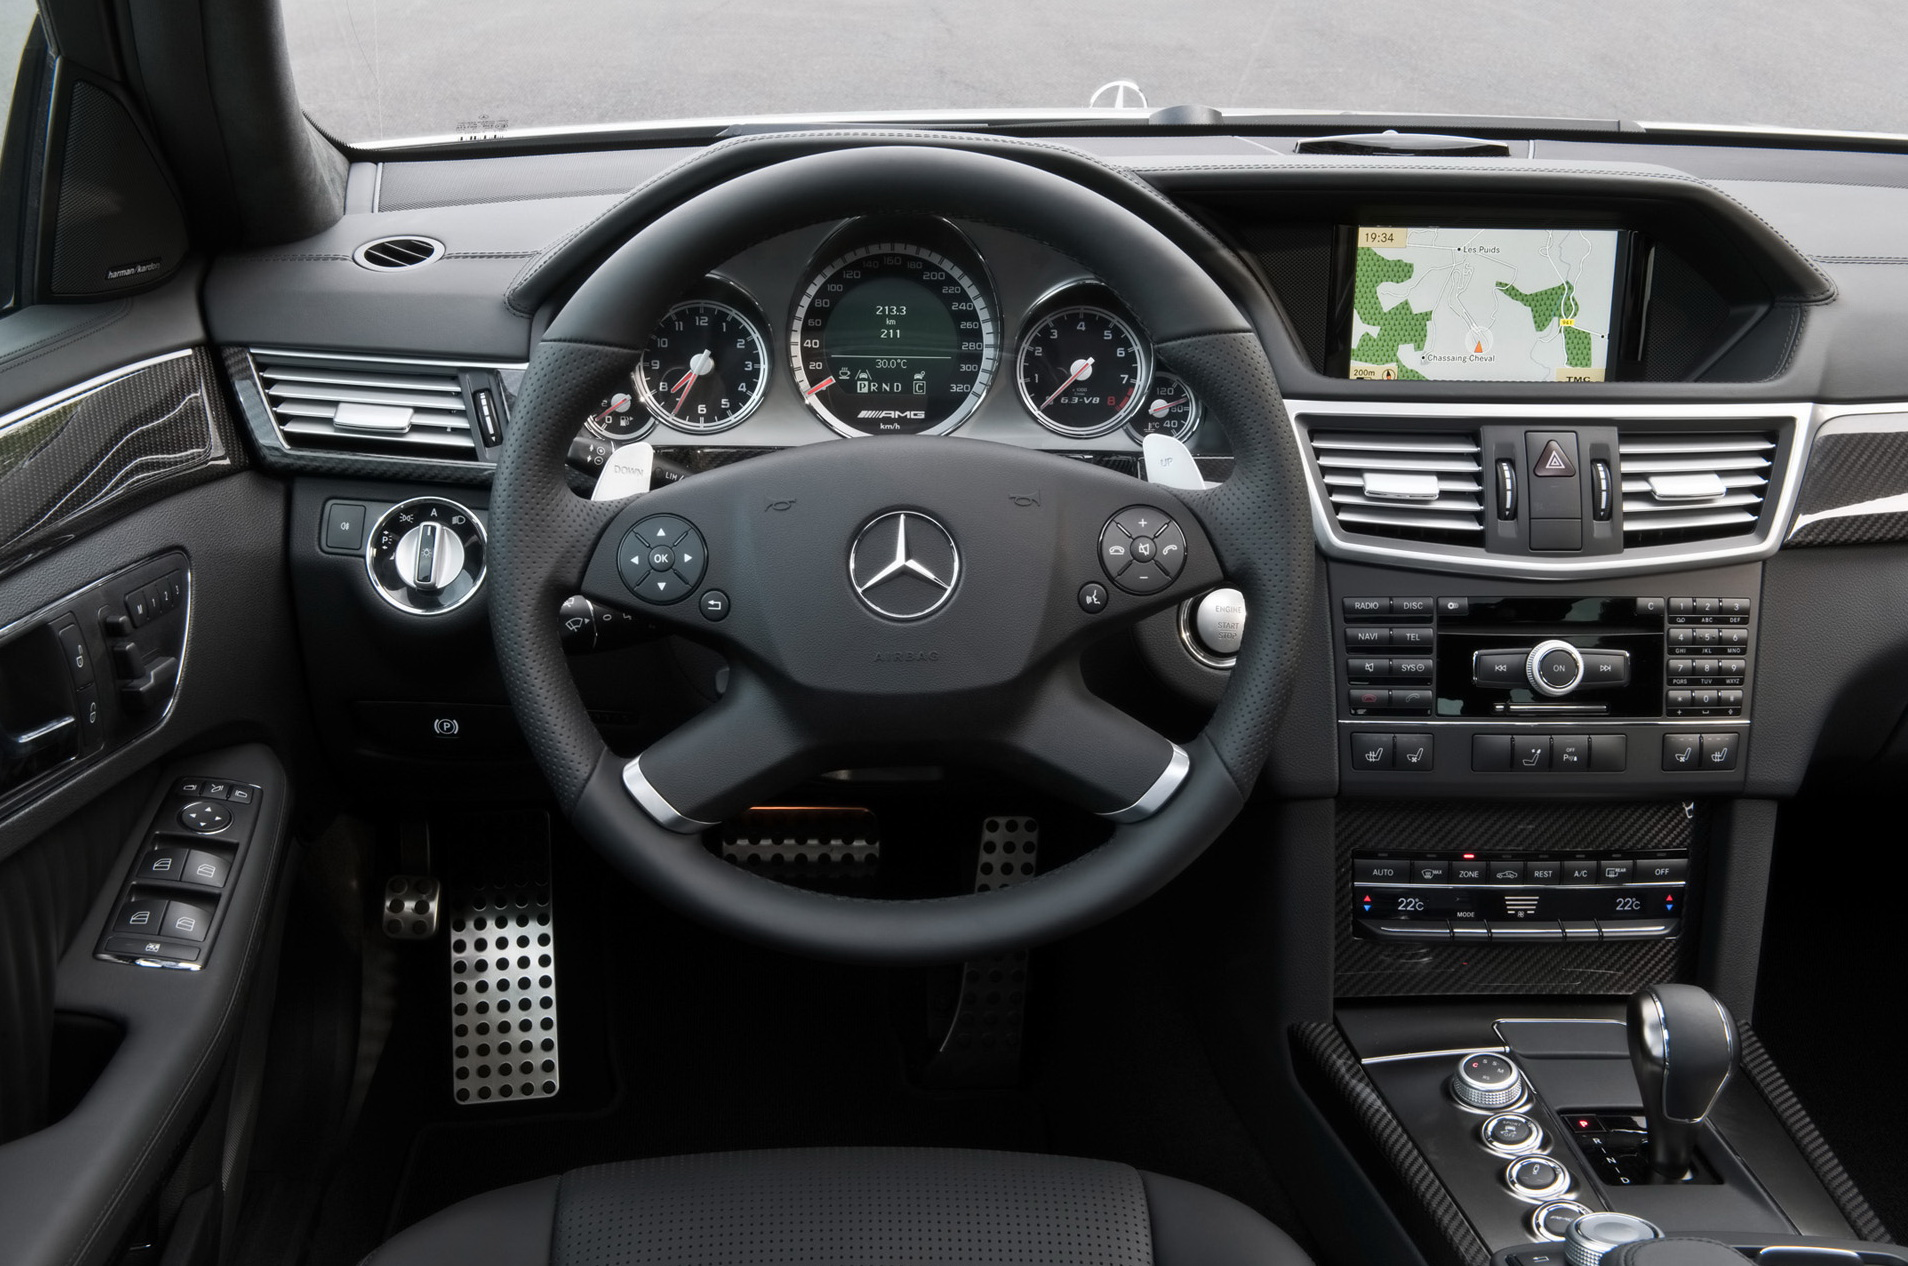 Emejing Mercedes Interieur Pictures Trend Ideas 2018: interieur mercedes